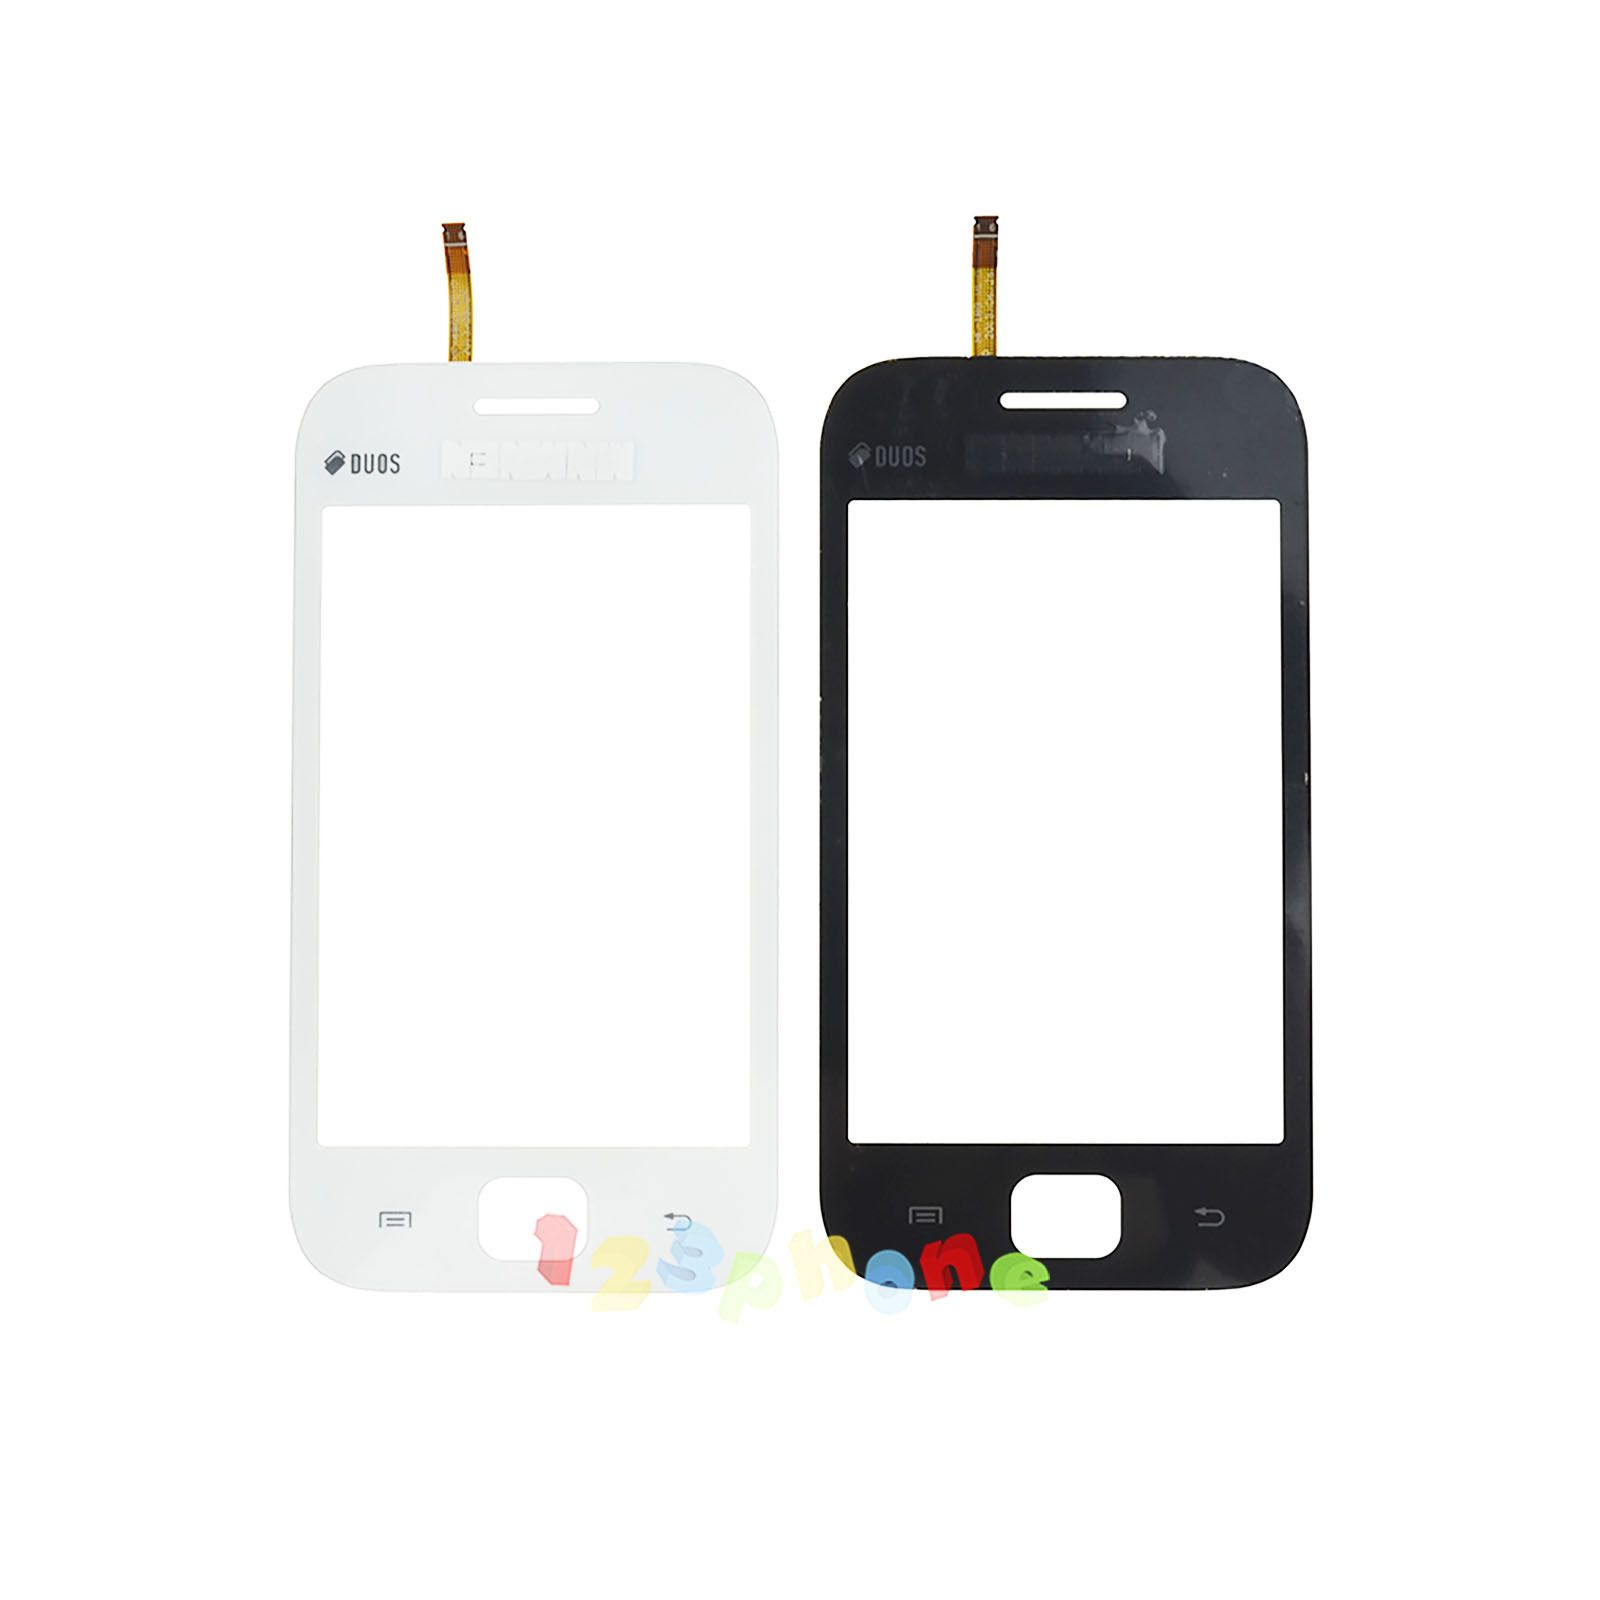 $7 2 AUD Replacement Touch Screen Glass Digitizer Panel For Samsung Galaxy G530 G530H ebay Electronics